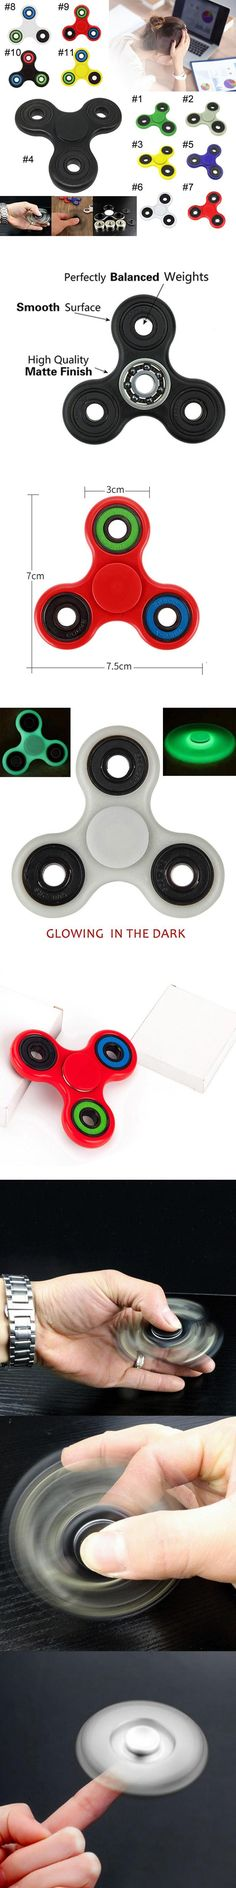 Need Stress Relief? Try a try blade Fidget Spinner, Don't Miss Our Sale Event!